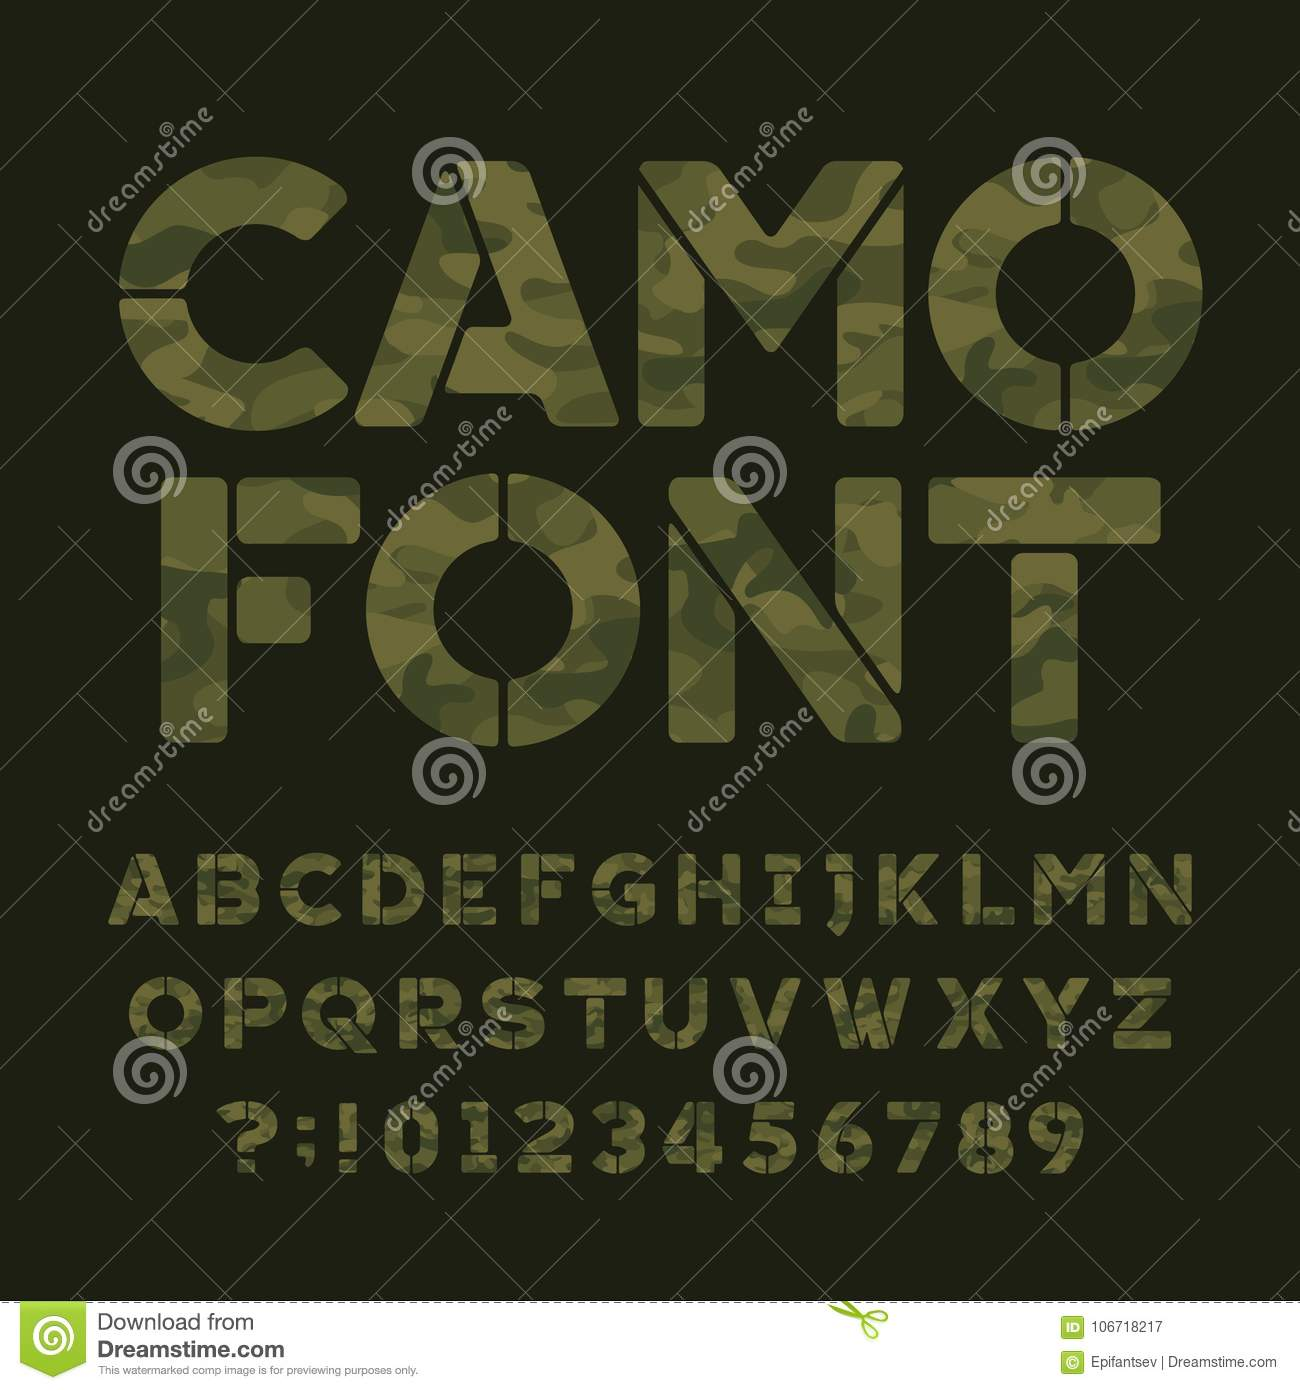 Camo Alphabet Font. Type Letters And Numbers On A Dark